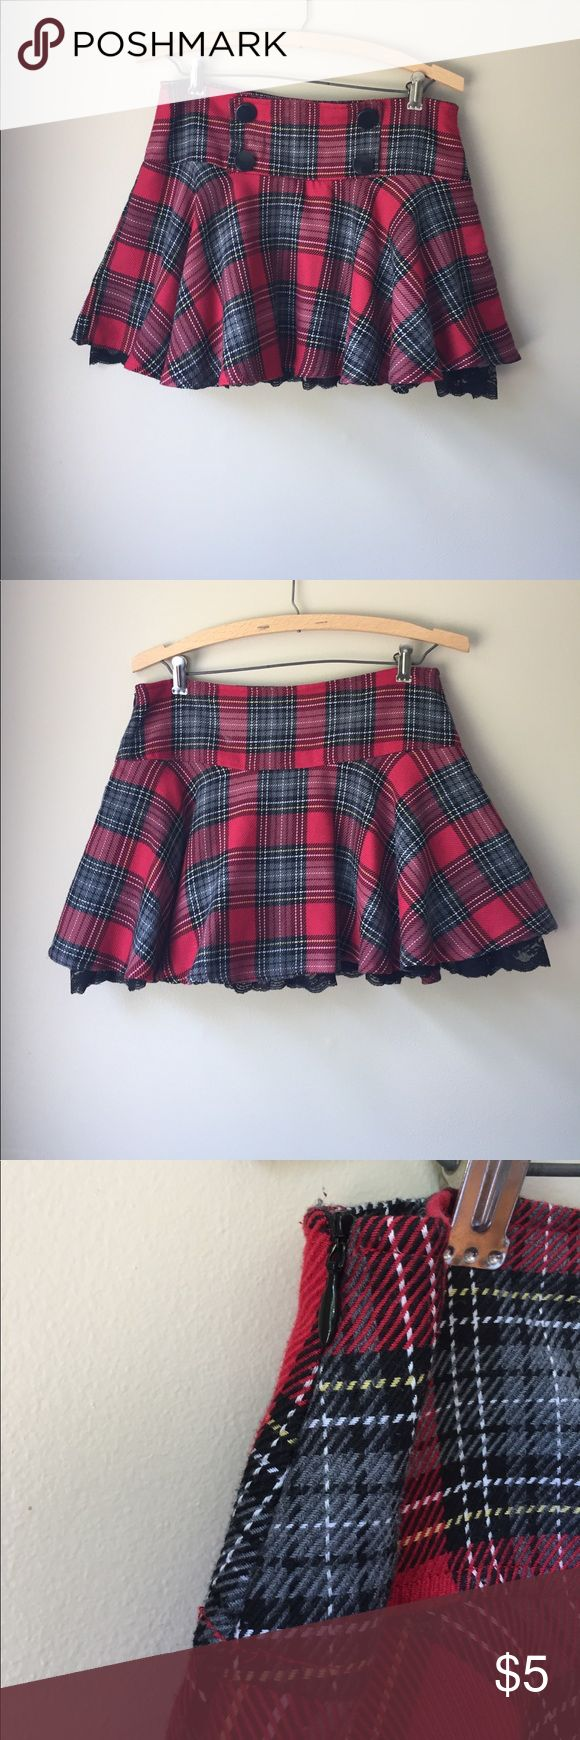 """Red Plaid Schoolgirl Lace Petticoat Mini Skirt This is a Plaid schoolgirl mini skirt with a side zip made by Forever 21 in a Size Medium. However, this brand runs small so that I why I have it listed as small. Waist: 15"""" & Length: approx 14"""". It has a black lace petticoat underneath. From a smoke and pet free home. Forever 21 Skirts Mini"""